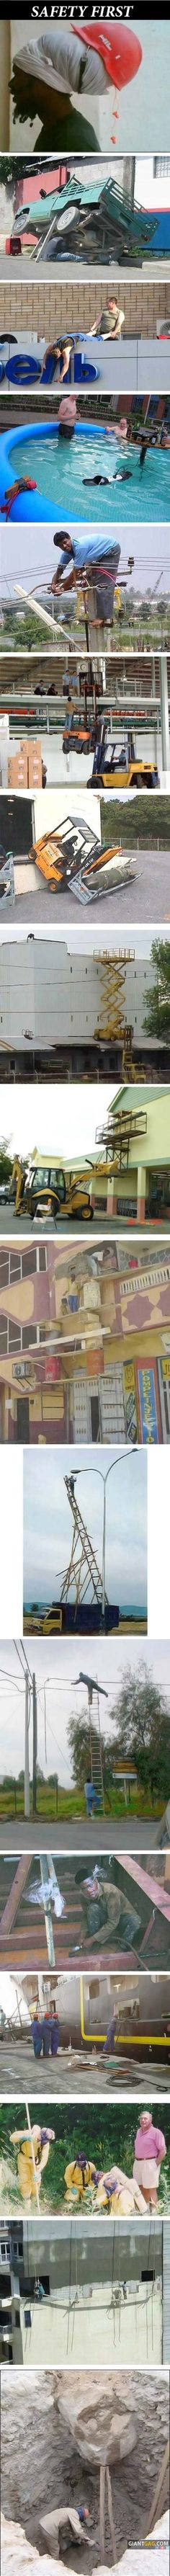 Safety First Compilation, click the link to view more funny pictures !